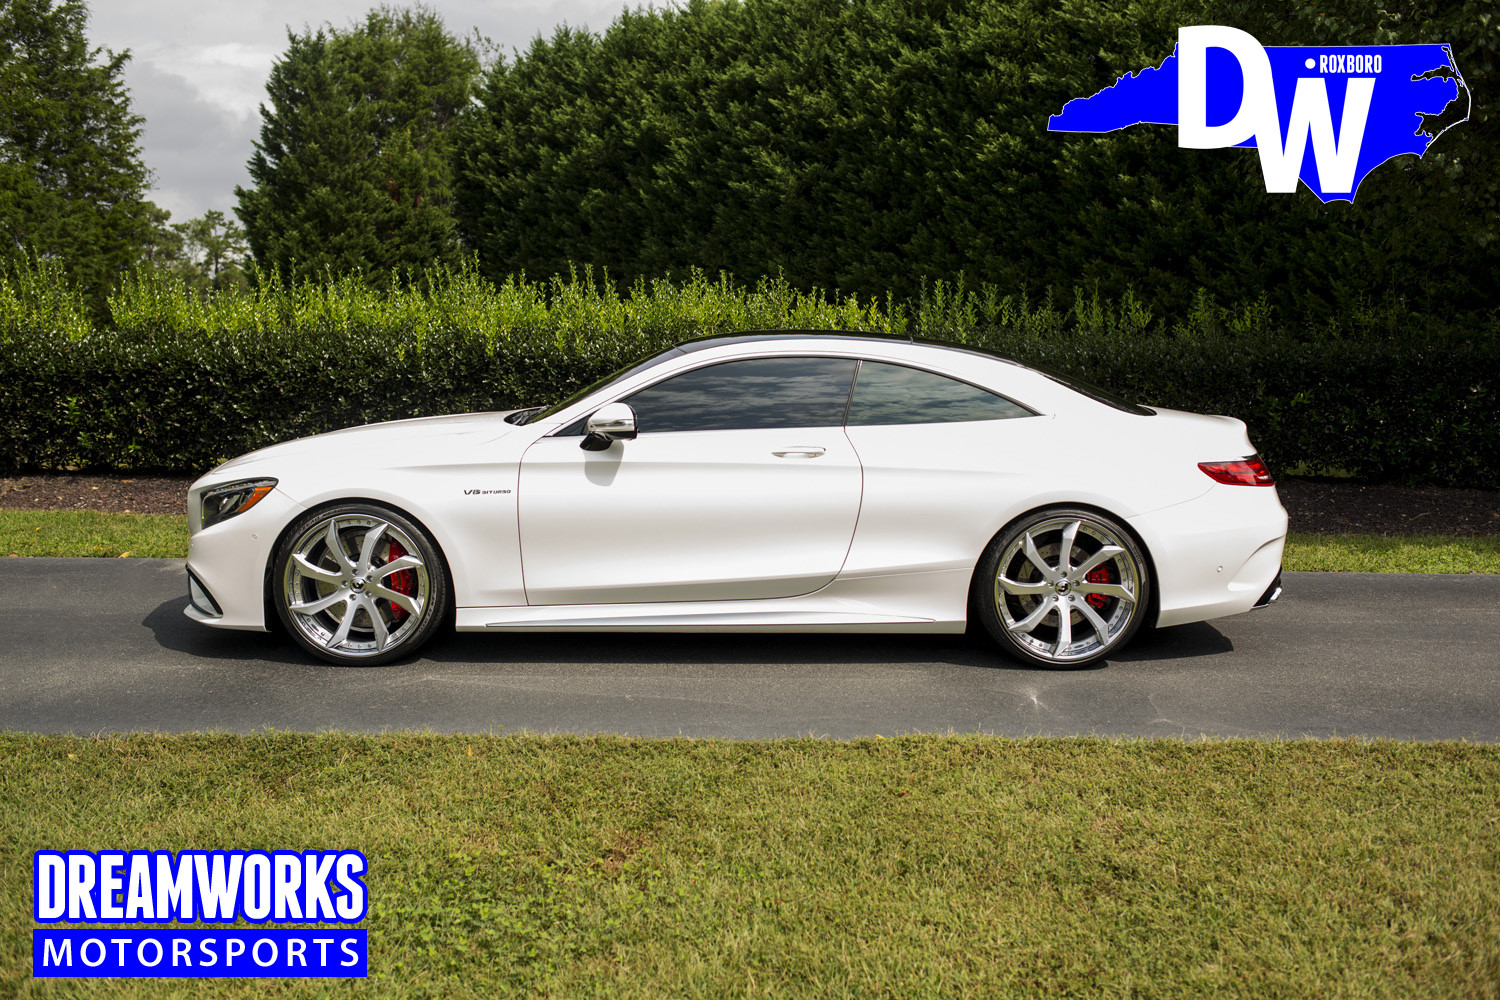 Mercedes-S-Coupe-by-Dreamworks-Motorsports.jpg